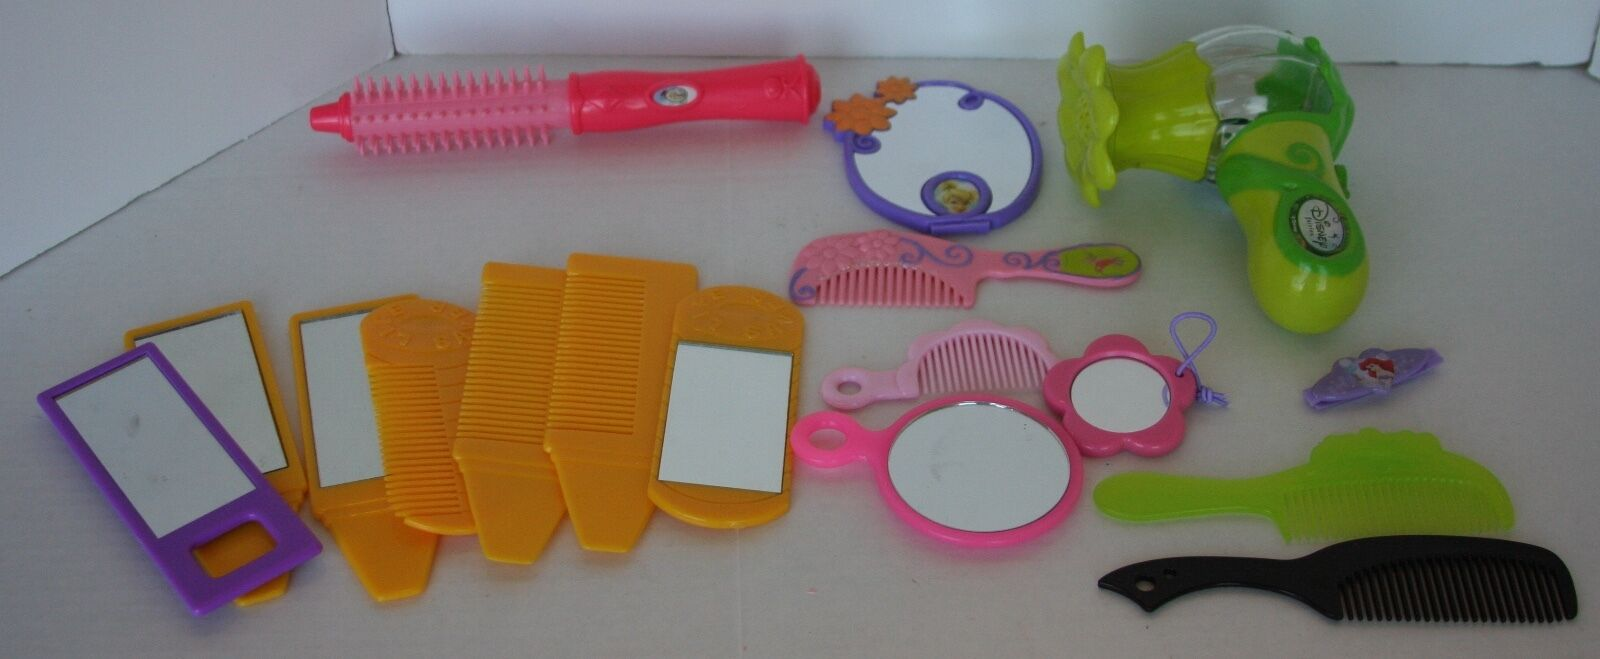 LOT OF Girl's Dress-Up Plastic Combs, Mirrors, Blow Dryer Perfect for Pretend